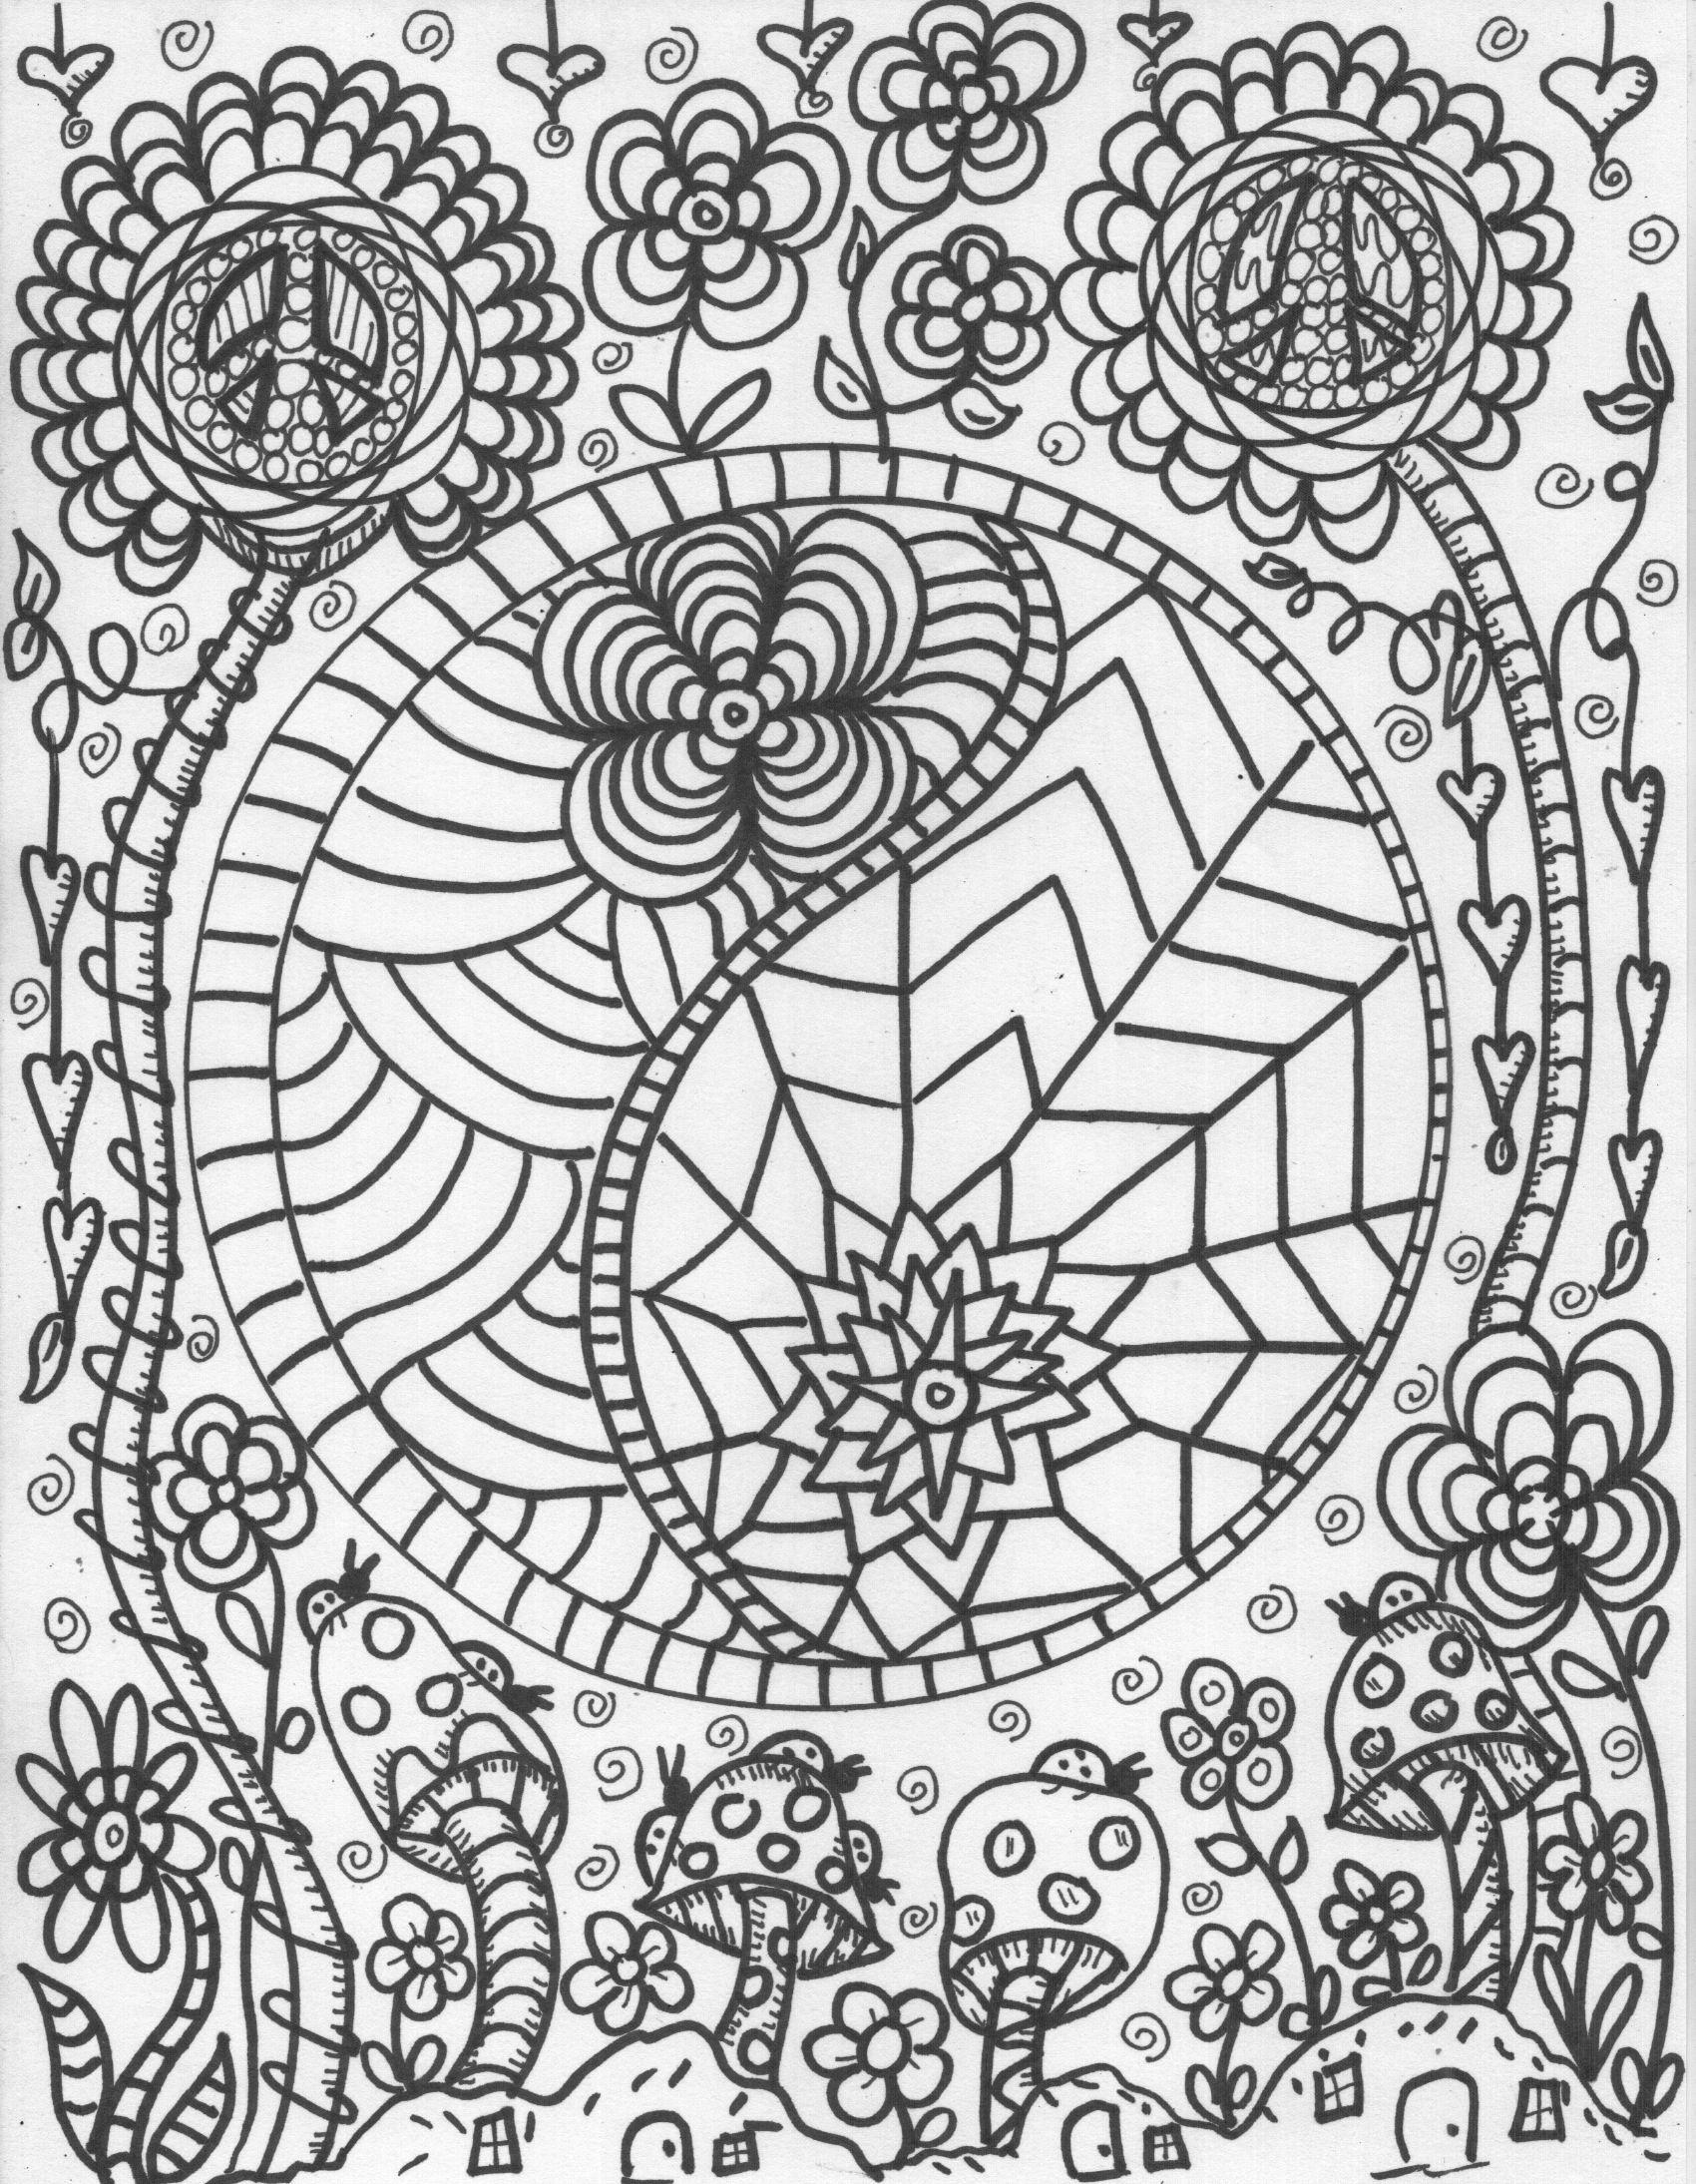 paisley coloring pages peace - photo#3